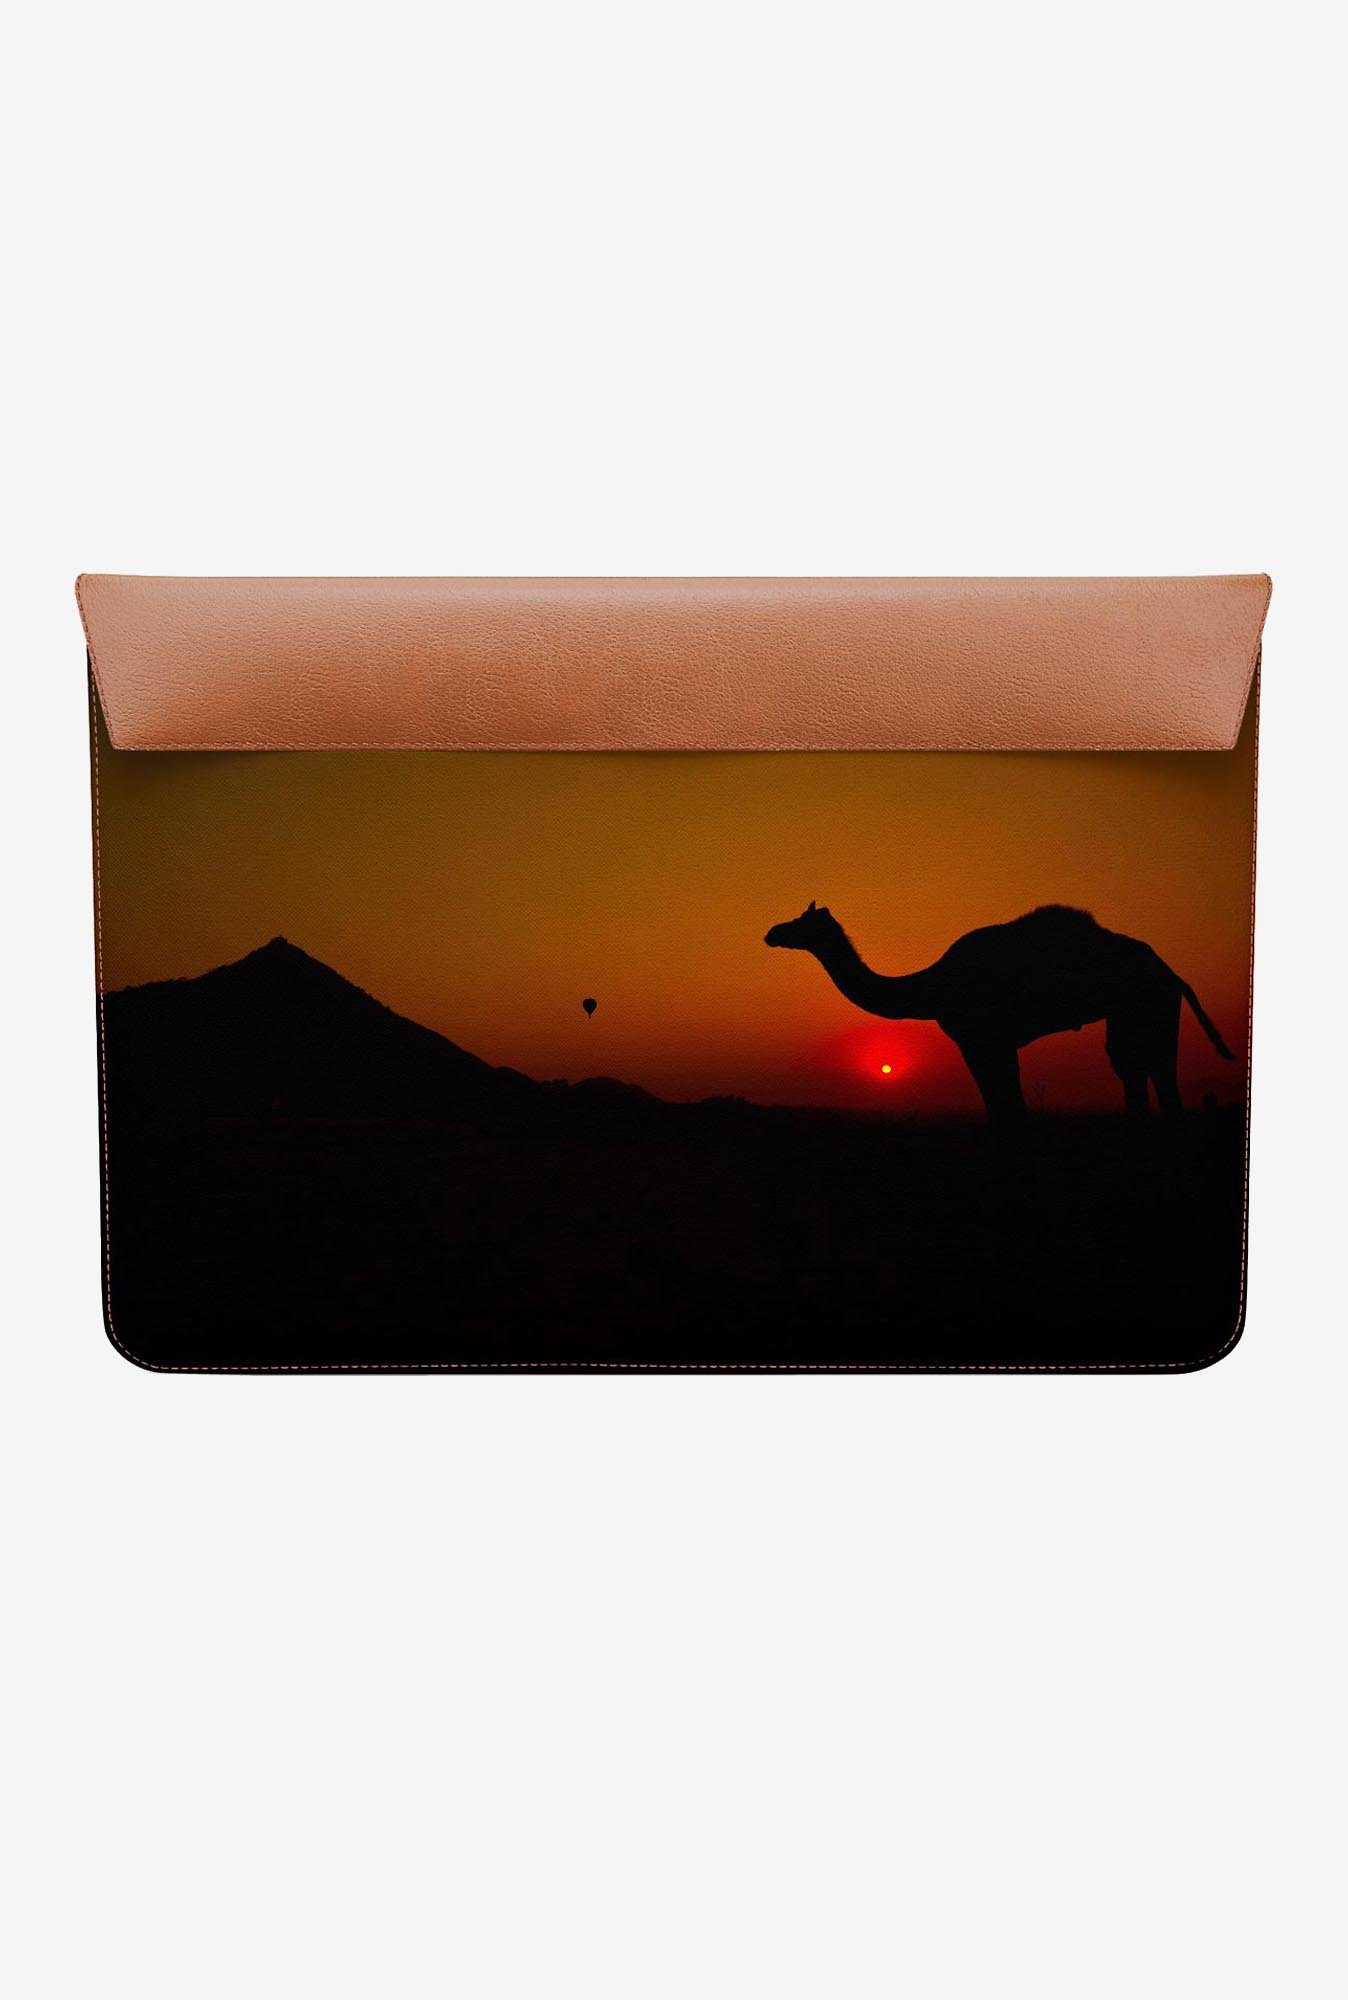 DailyObjects Pushkar Balloon MacBook Pro 13 Envelope Sleeve